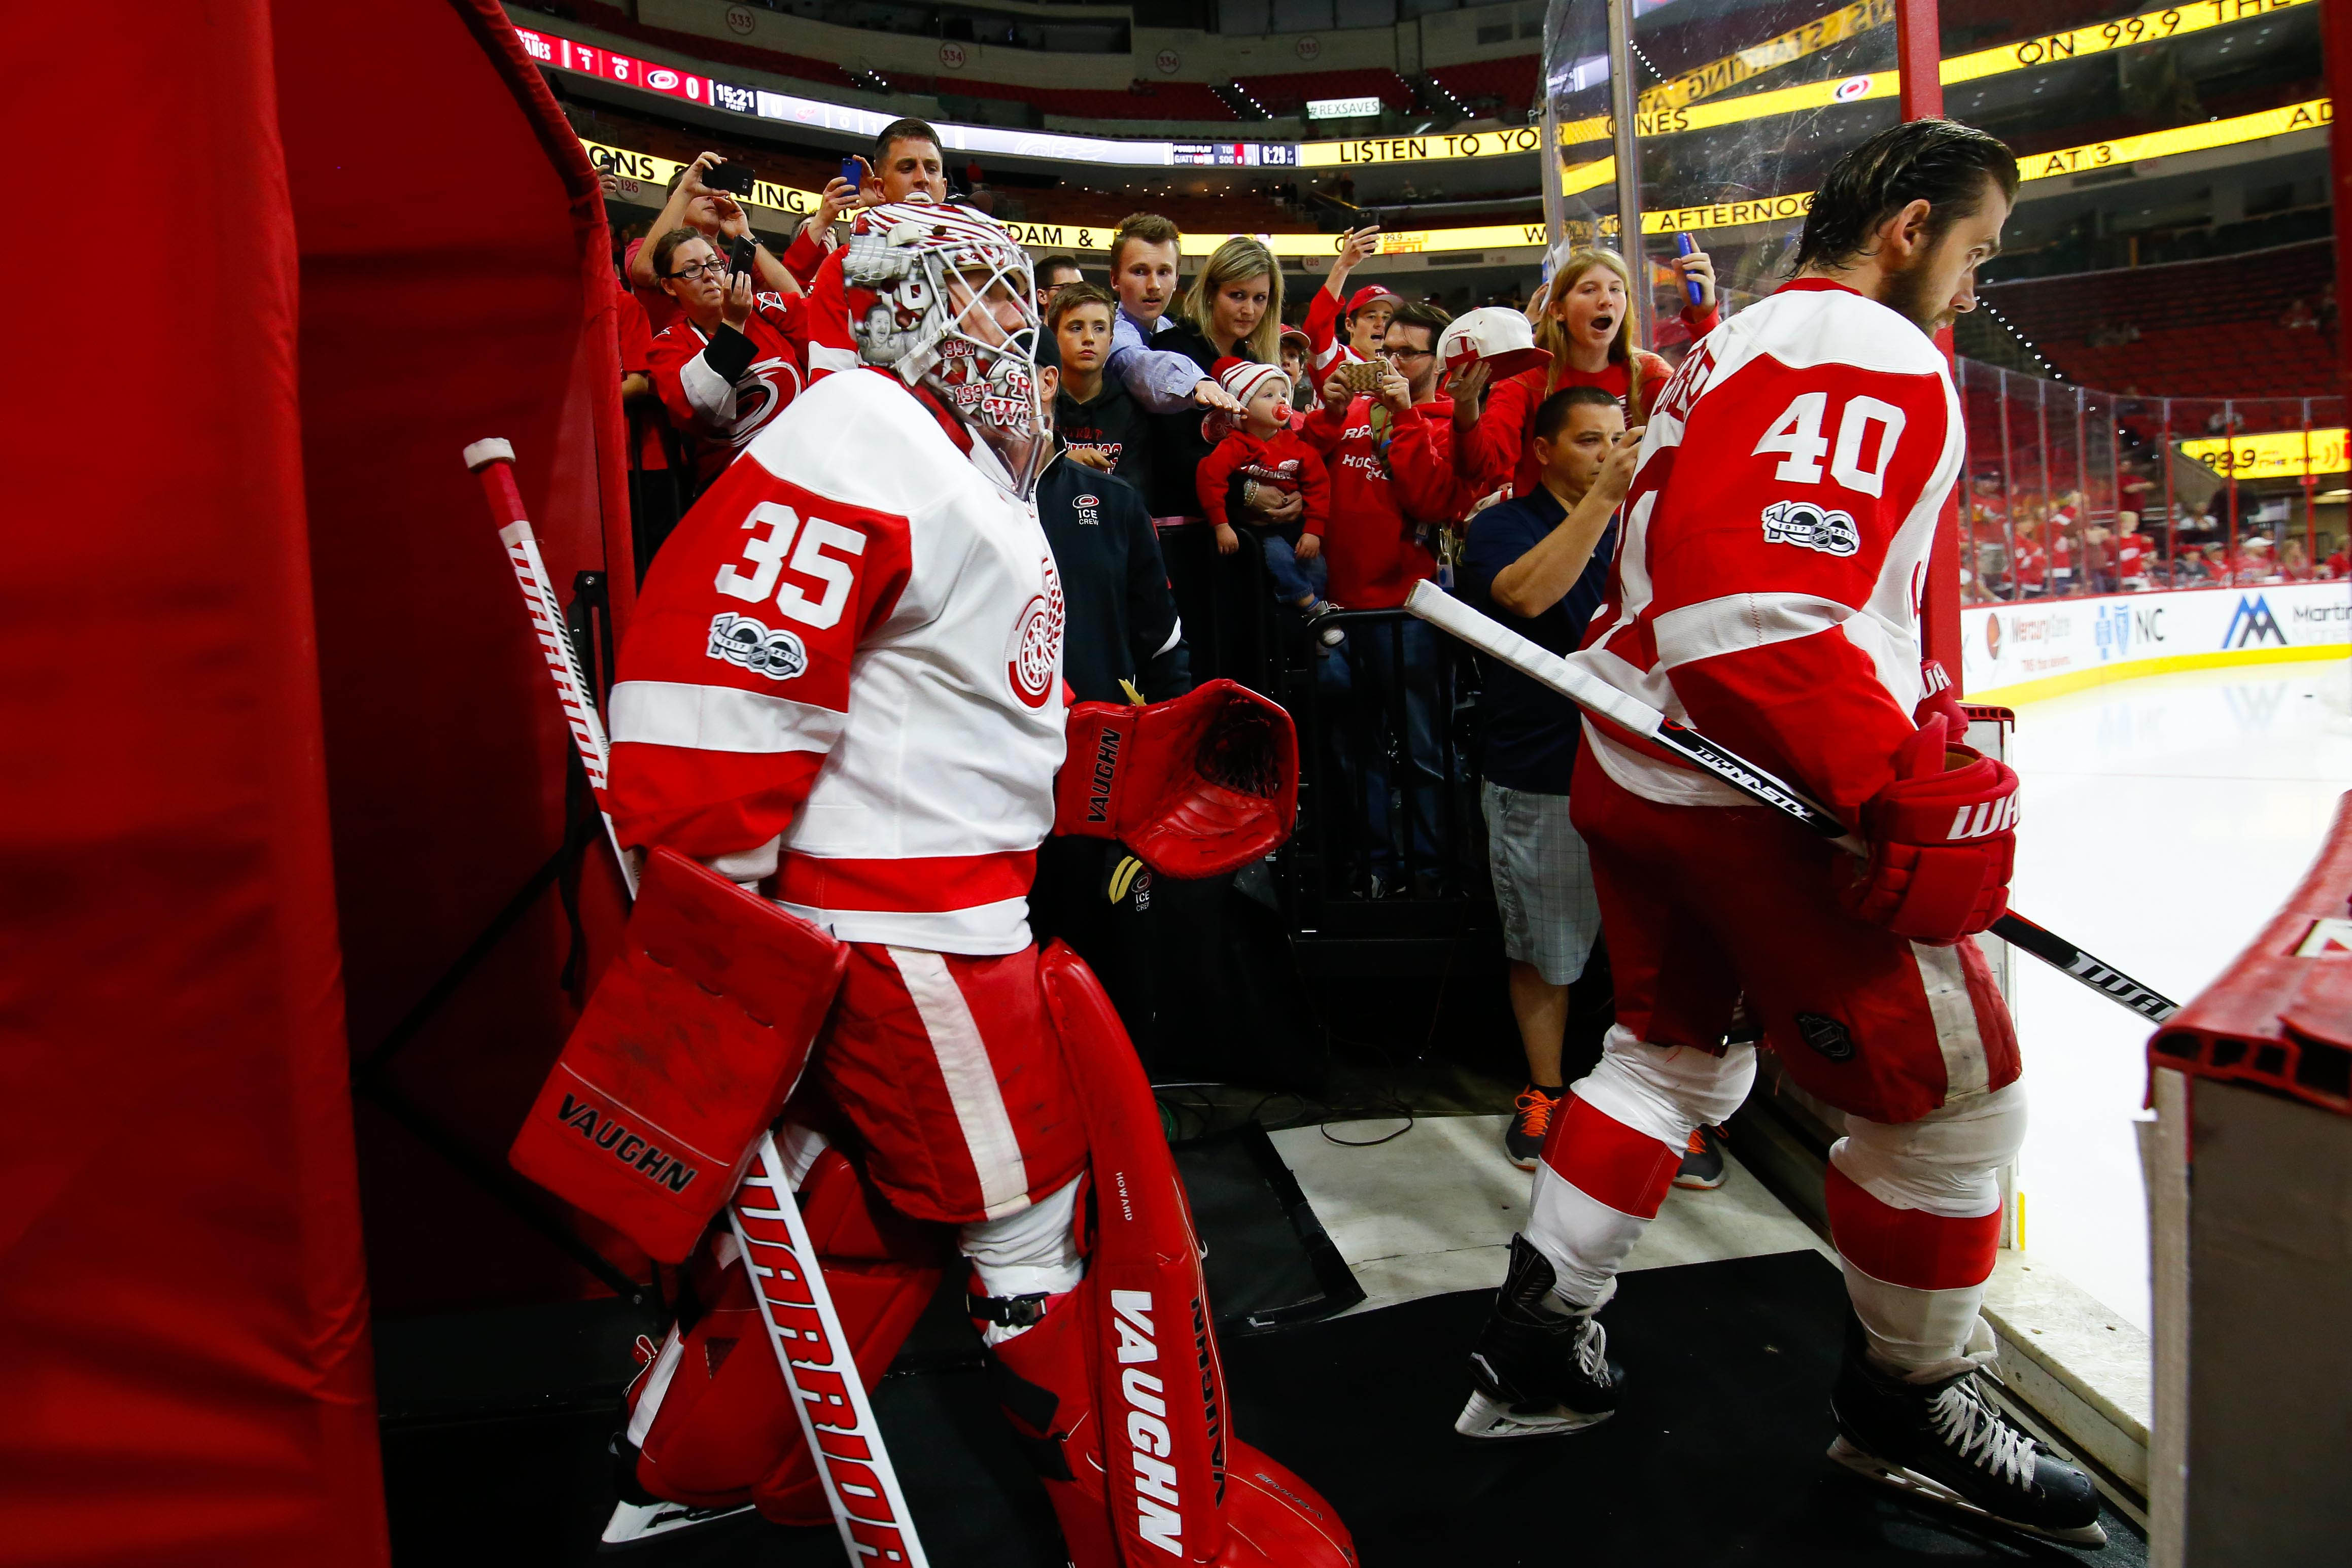 9976201-nhl-detroit-red-wings-at-carolina-hurricanes